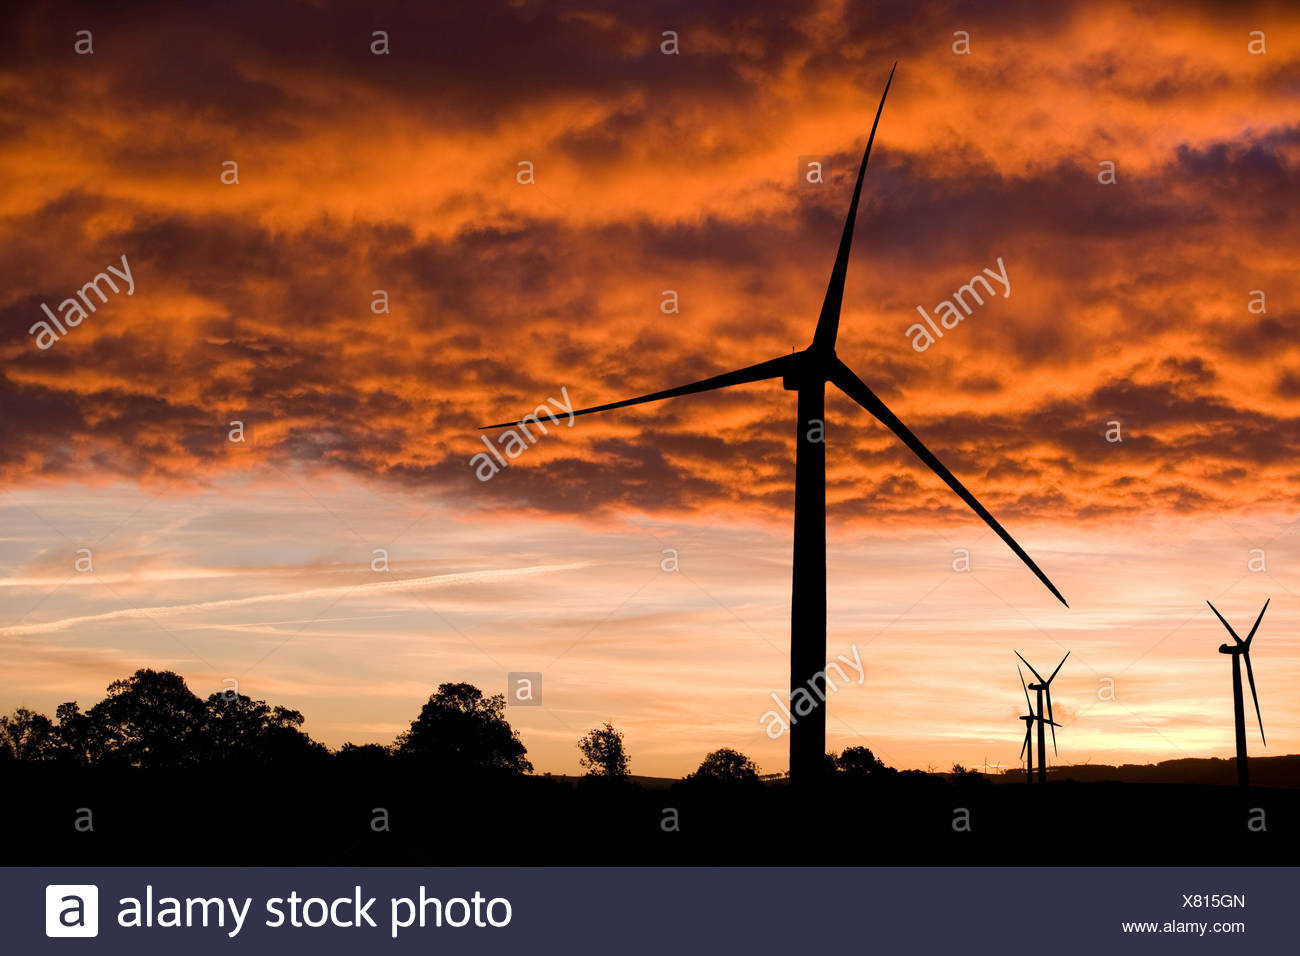 Windmills silhouetted against orange clouds - Stock Image